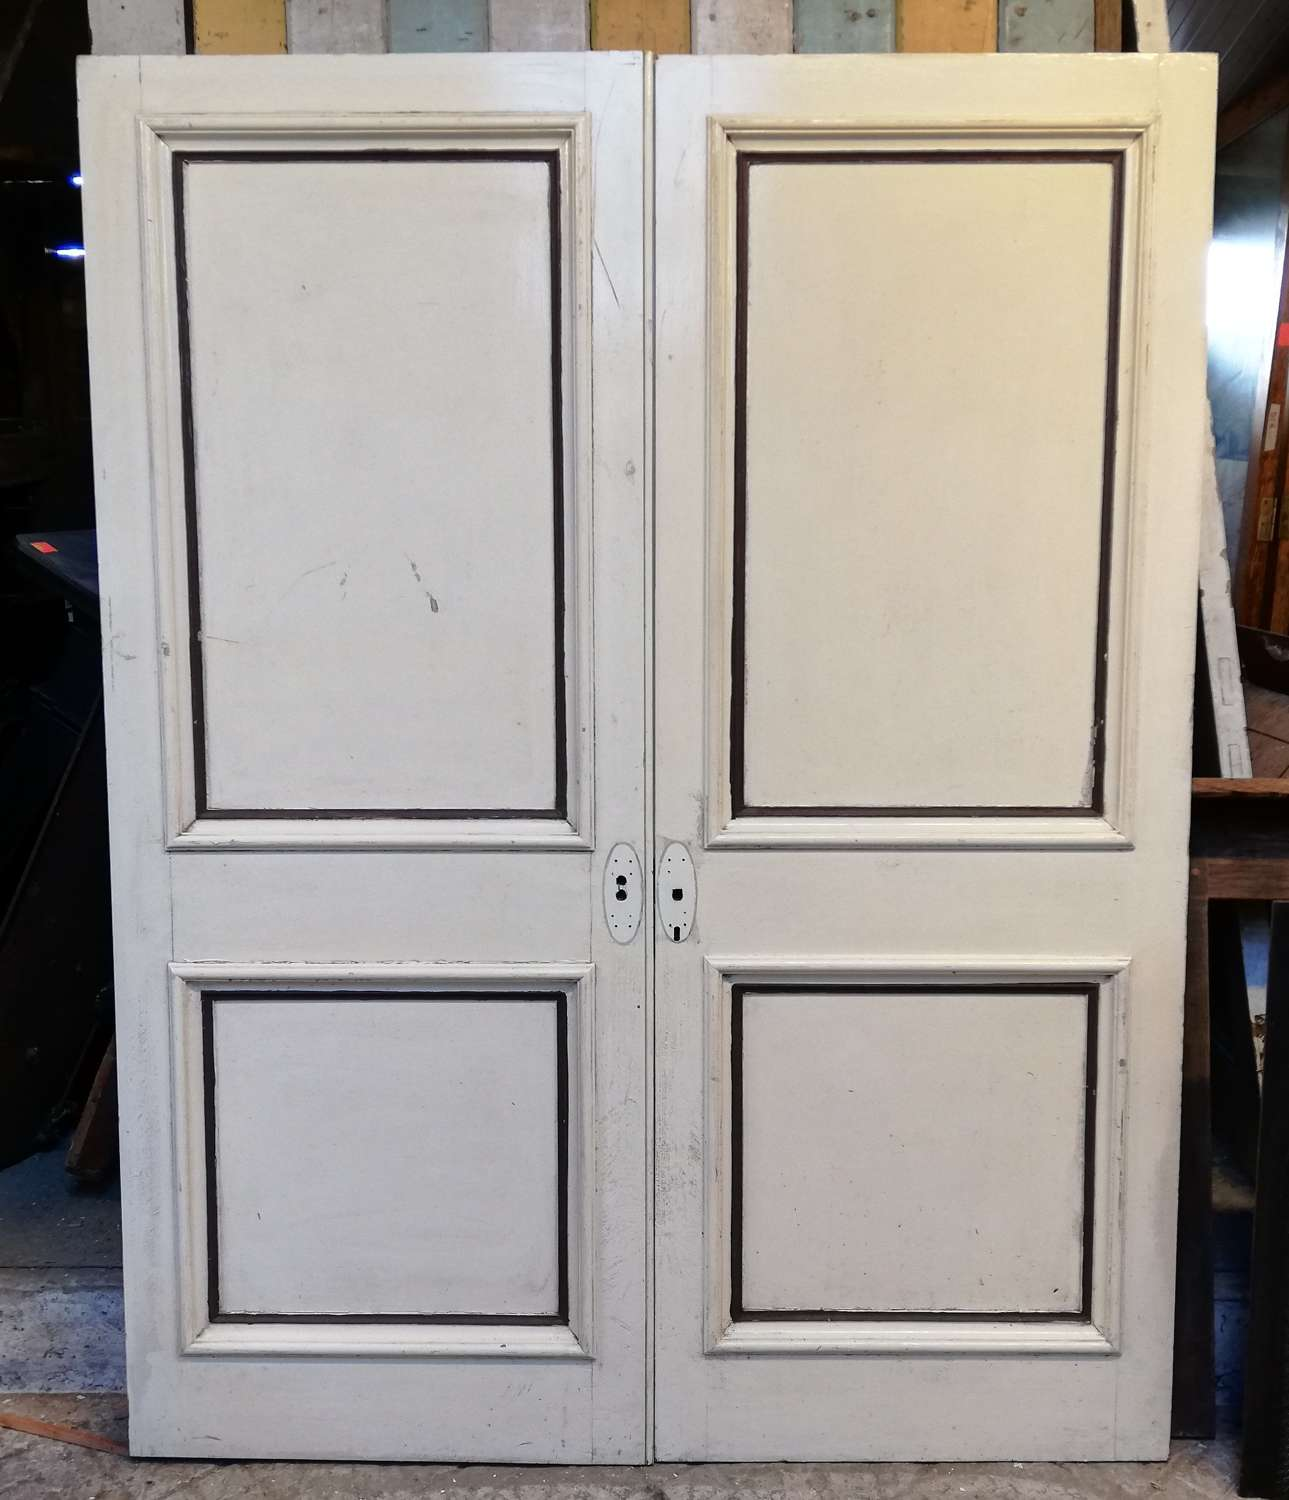 DP0281 A PAIR OF RECLAIMED PAINTED PINE INTERNAL DOORS